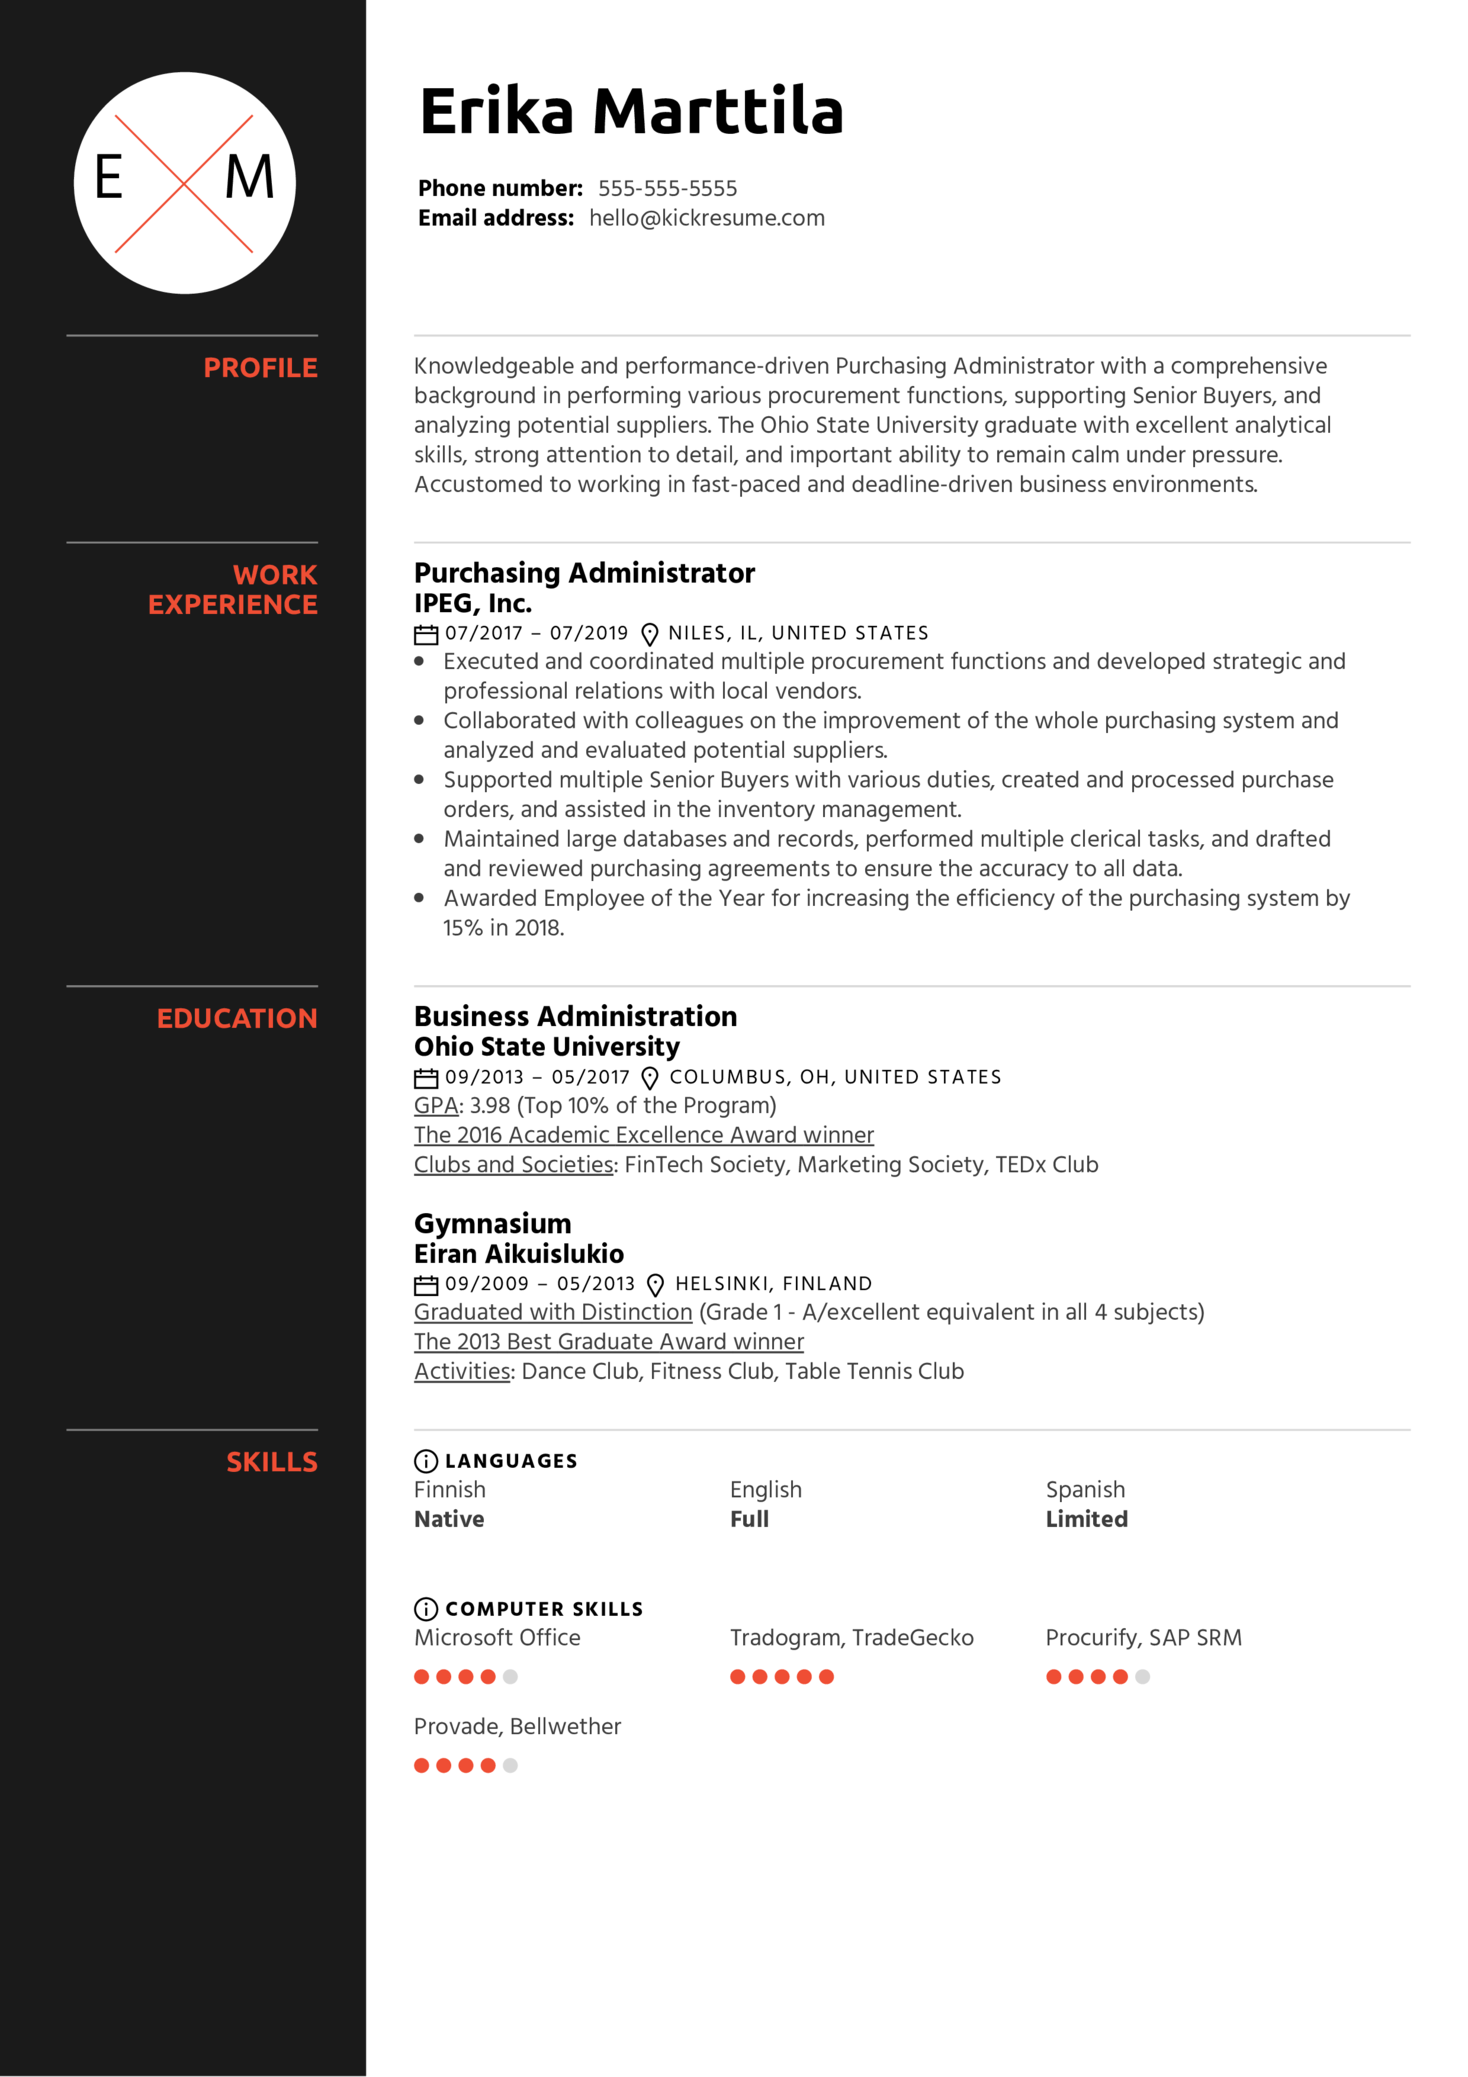 Purchasing Administrator Resume Example (Part 1)